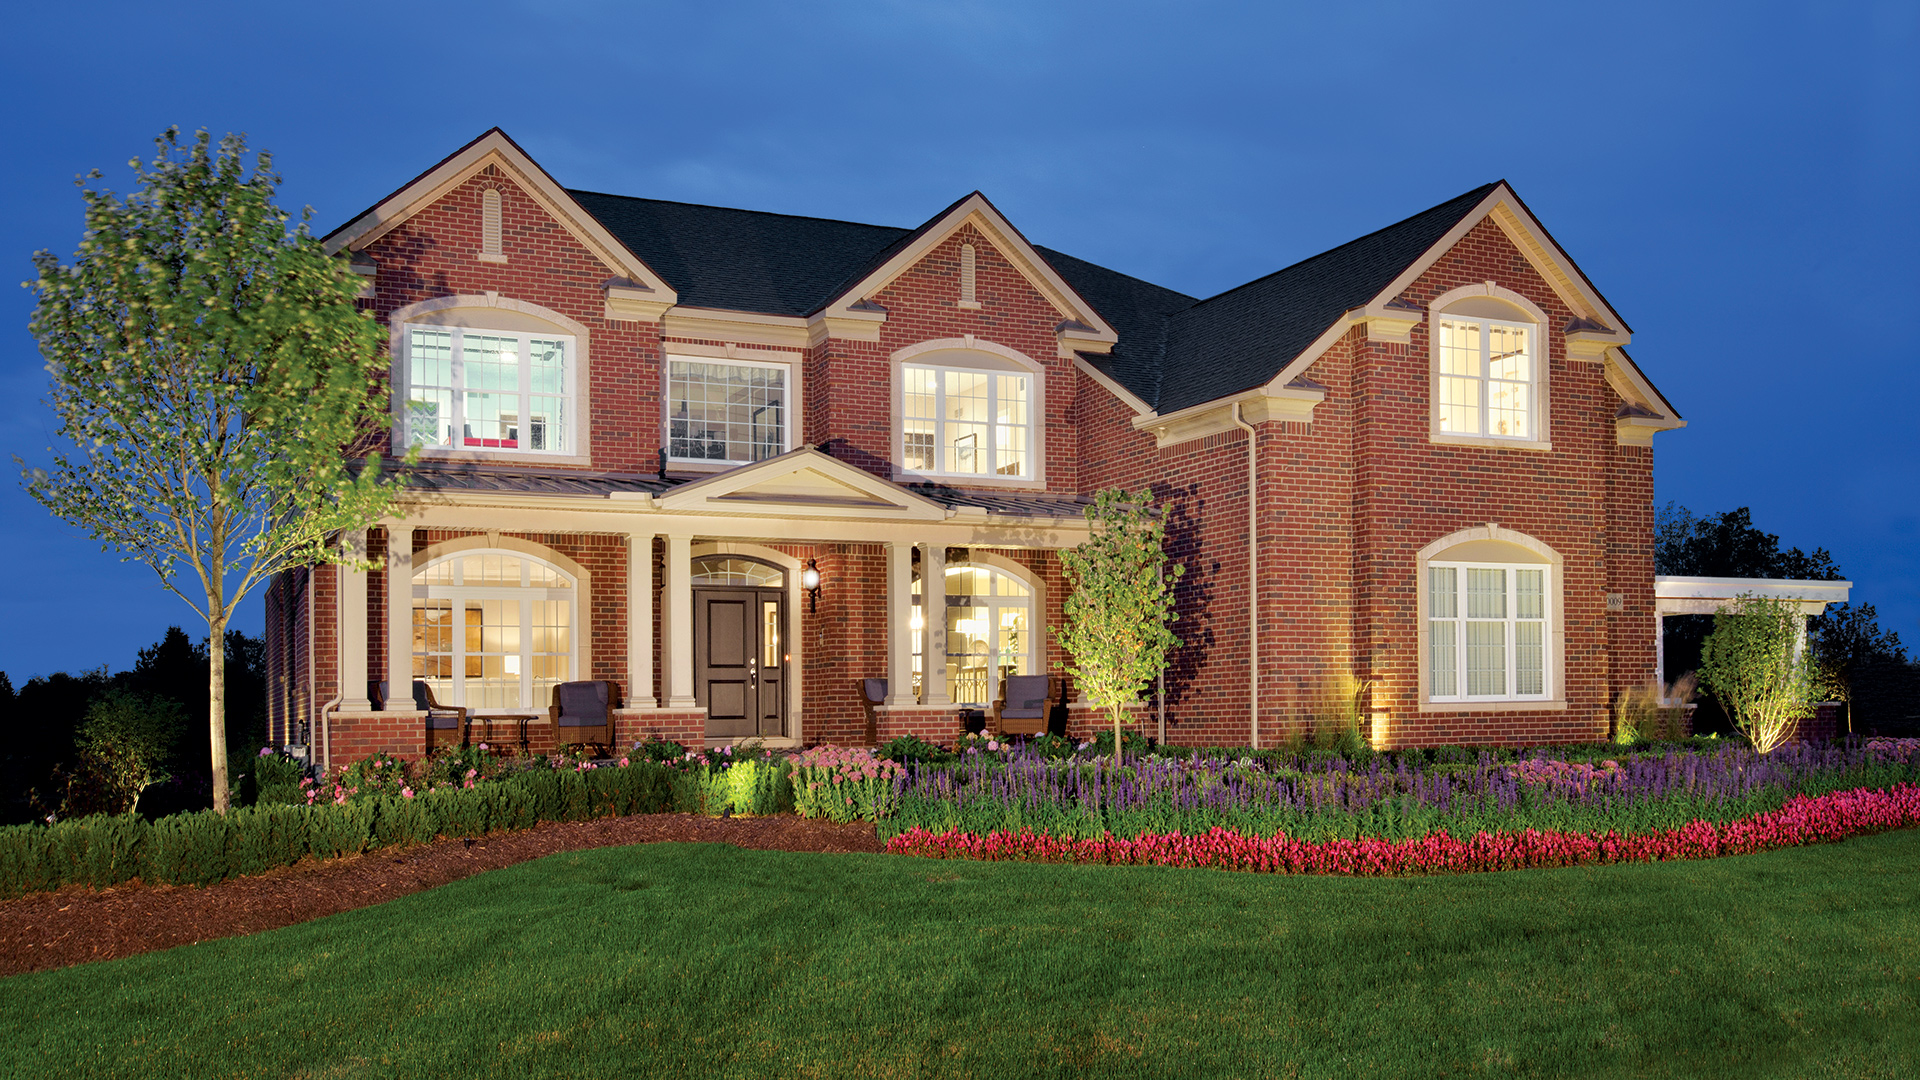 This is the Innovative Image Of Patio Homes for Sale Lexington Ky